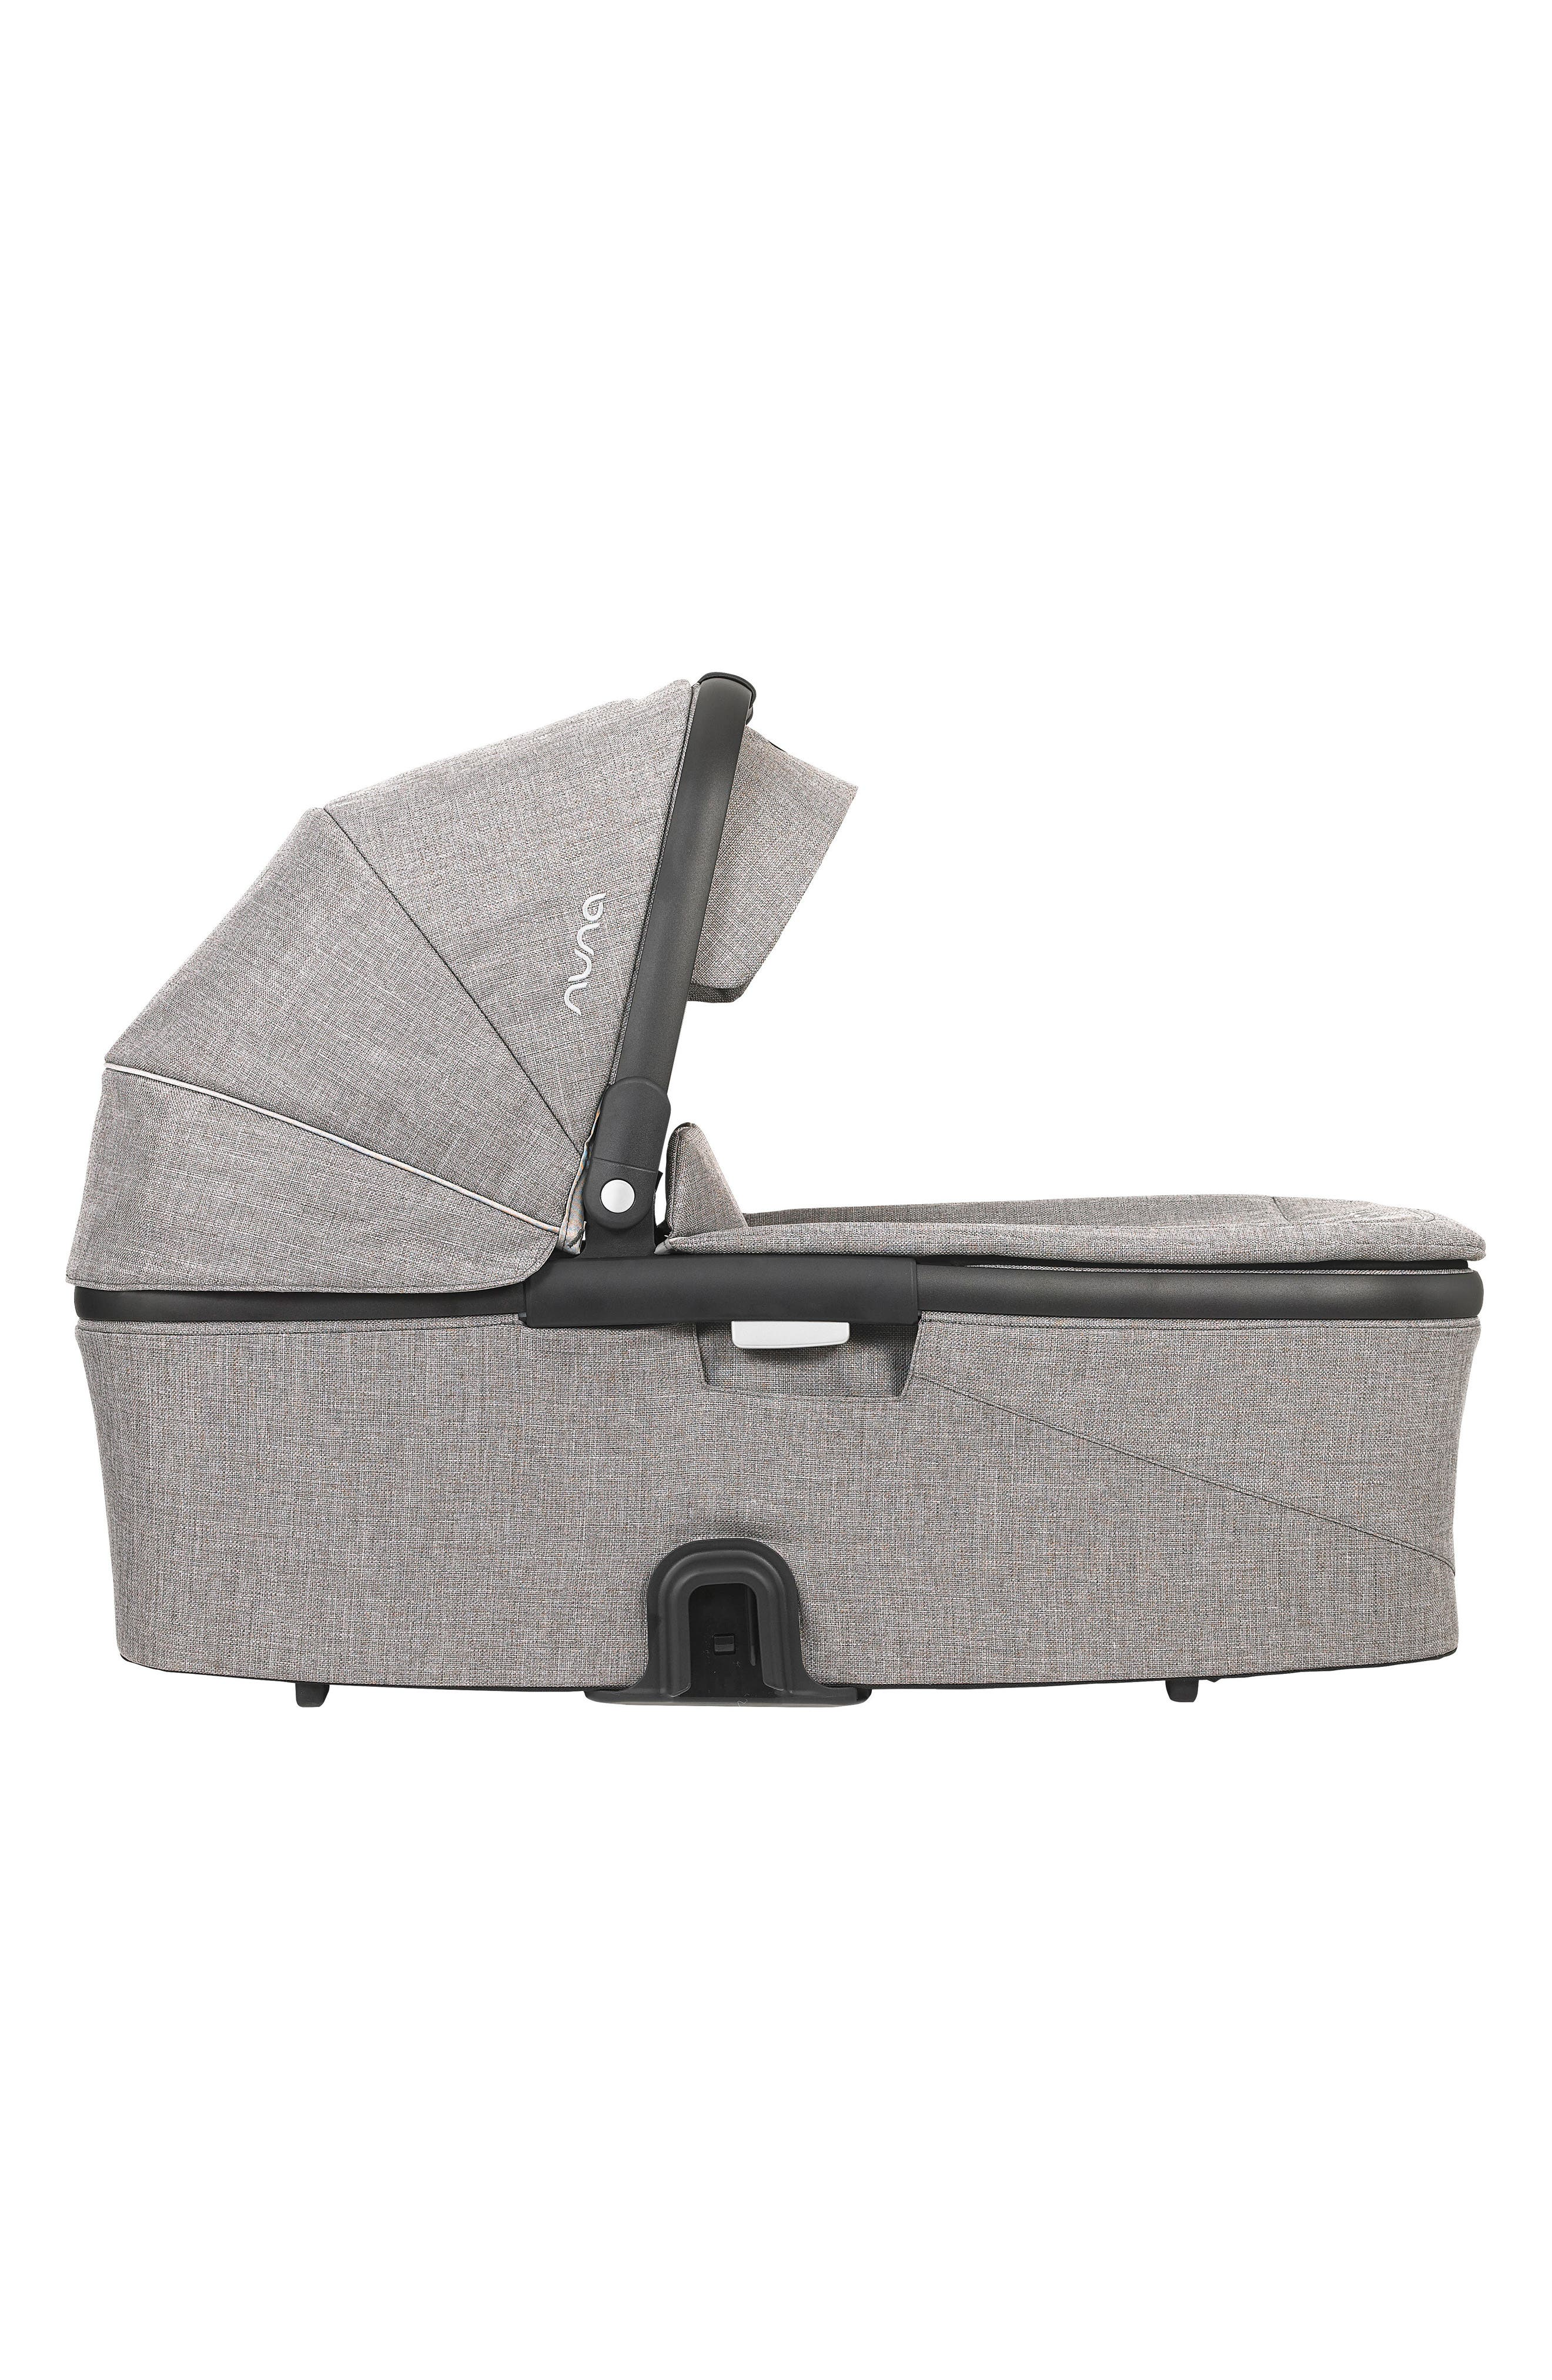 DEMI<sup>™</sup> Grow Bassinet Attachment for DEMI<sup>™</sup> Grow Stroller,                             Alternate thumbnail 2, color,                             Frost